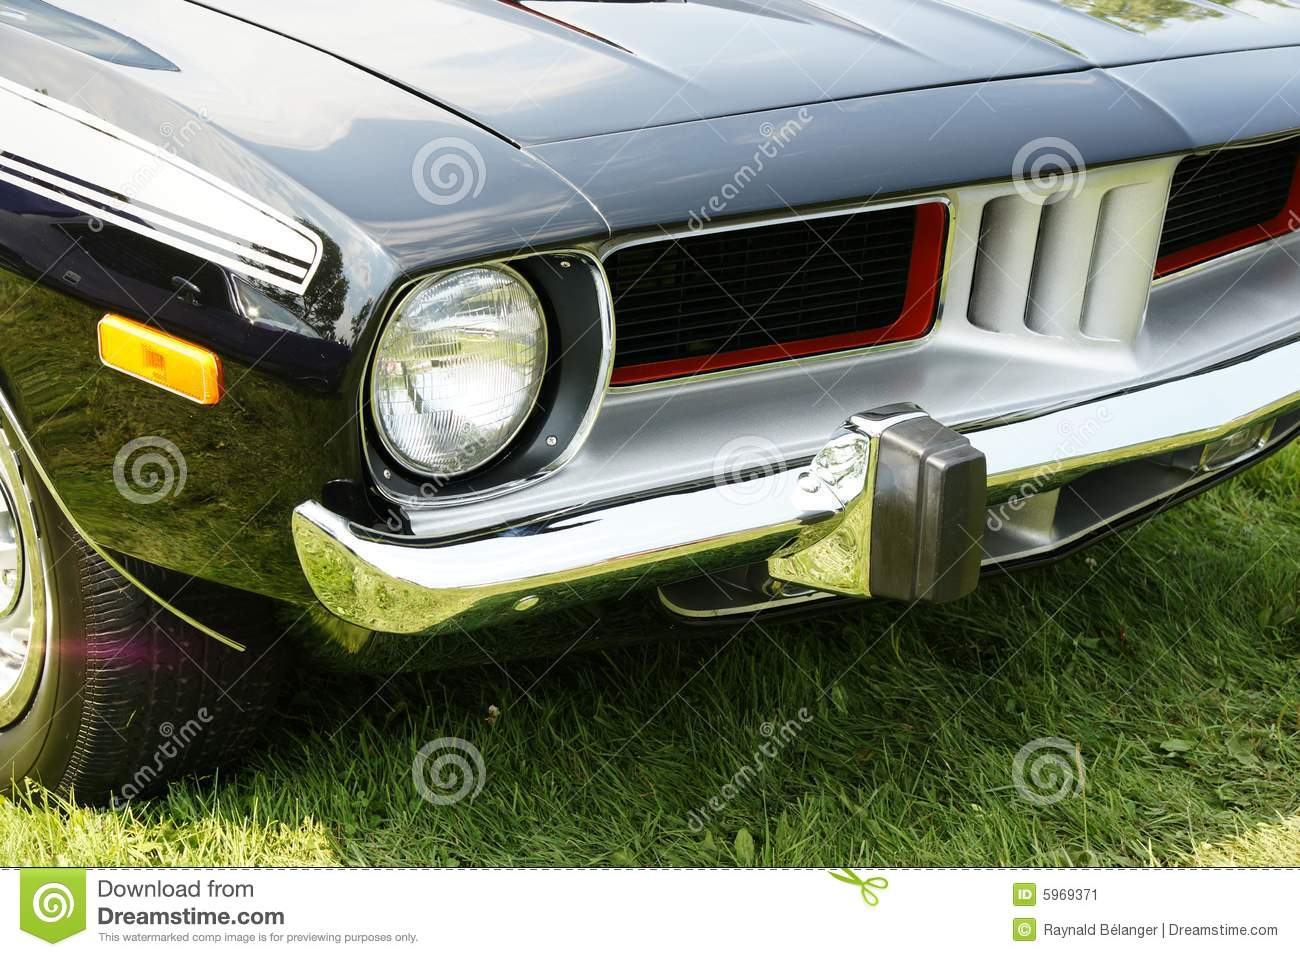 Plymouth Cuda Front End Stock Image - Image: 5969371